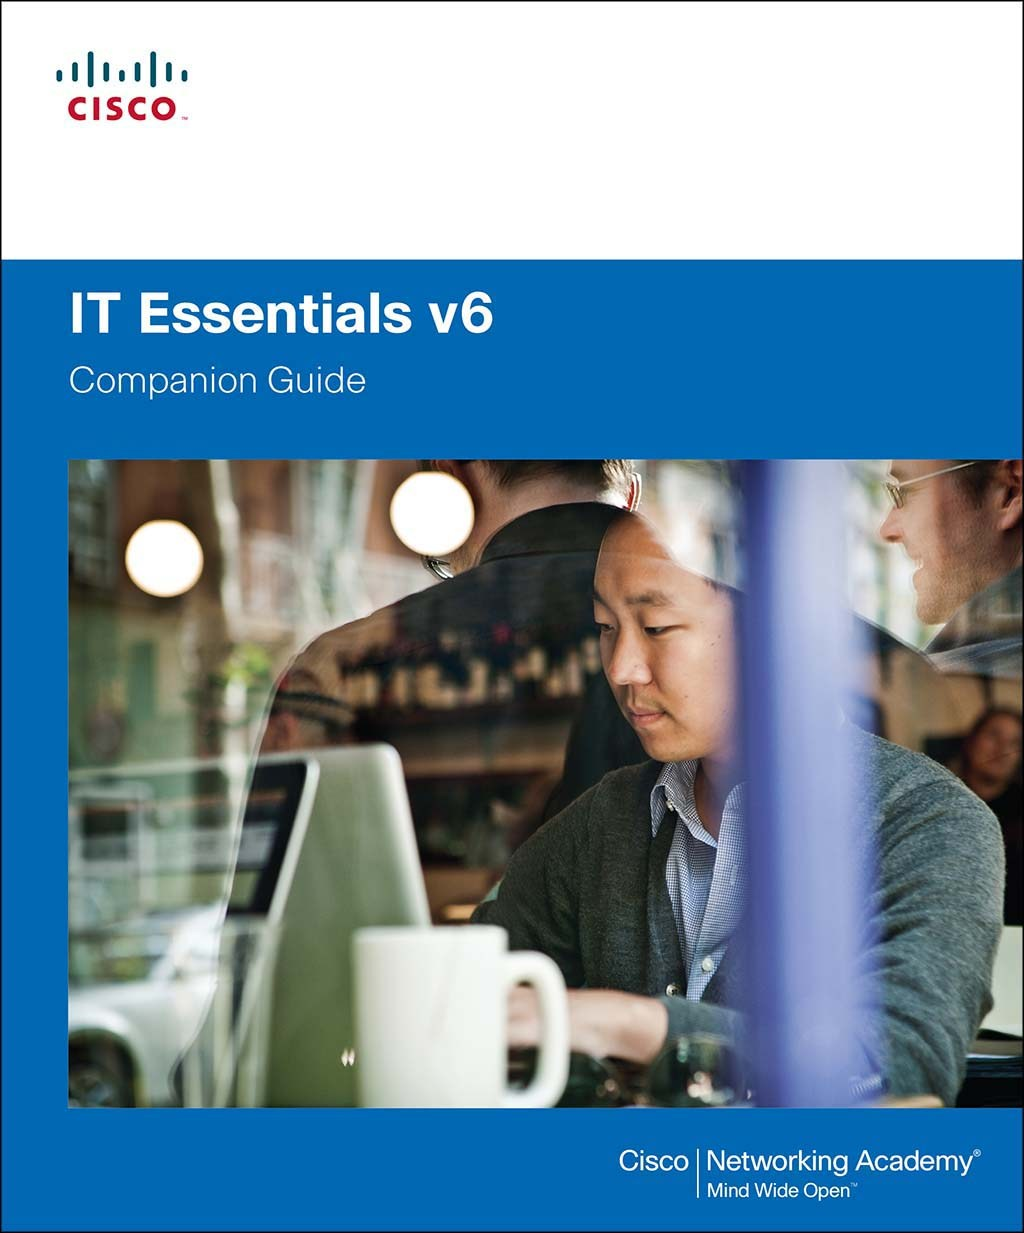 It essentials companion guide v6 6th edition widget it essentials companion guide v6 6th edition view larger image larger cover fandeluxe Choice Image